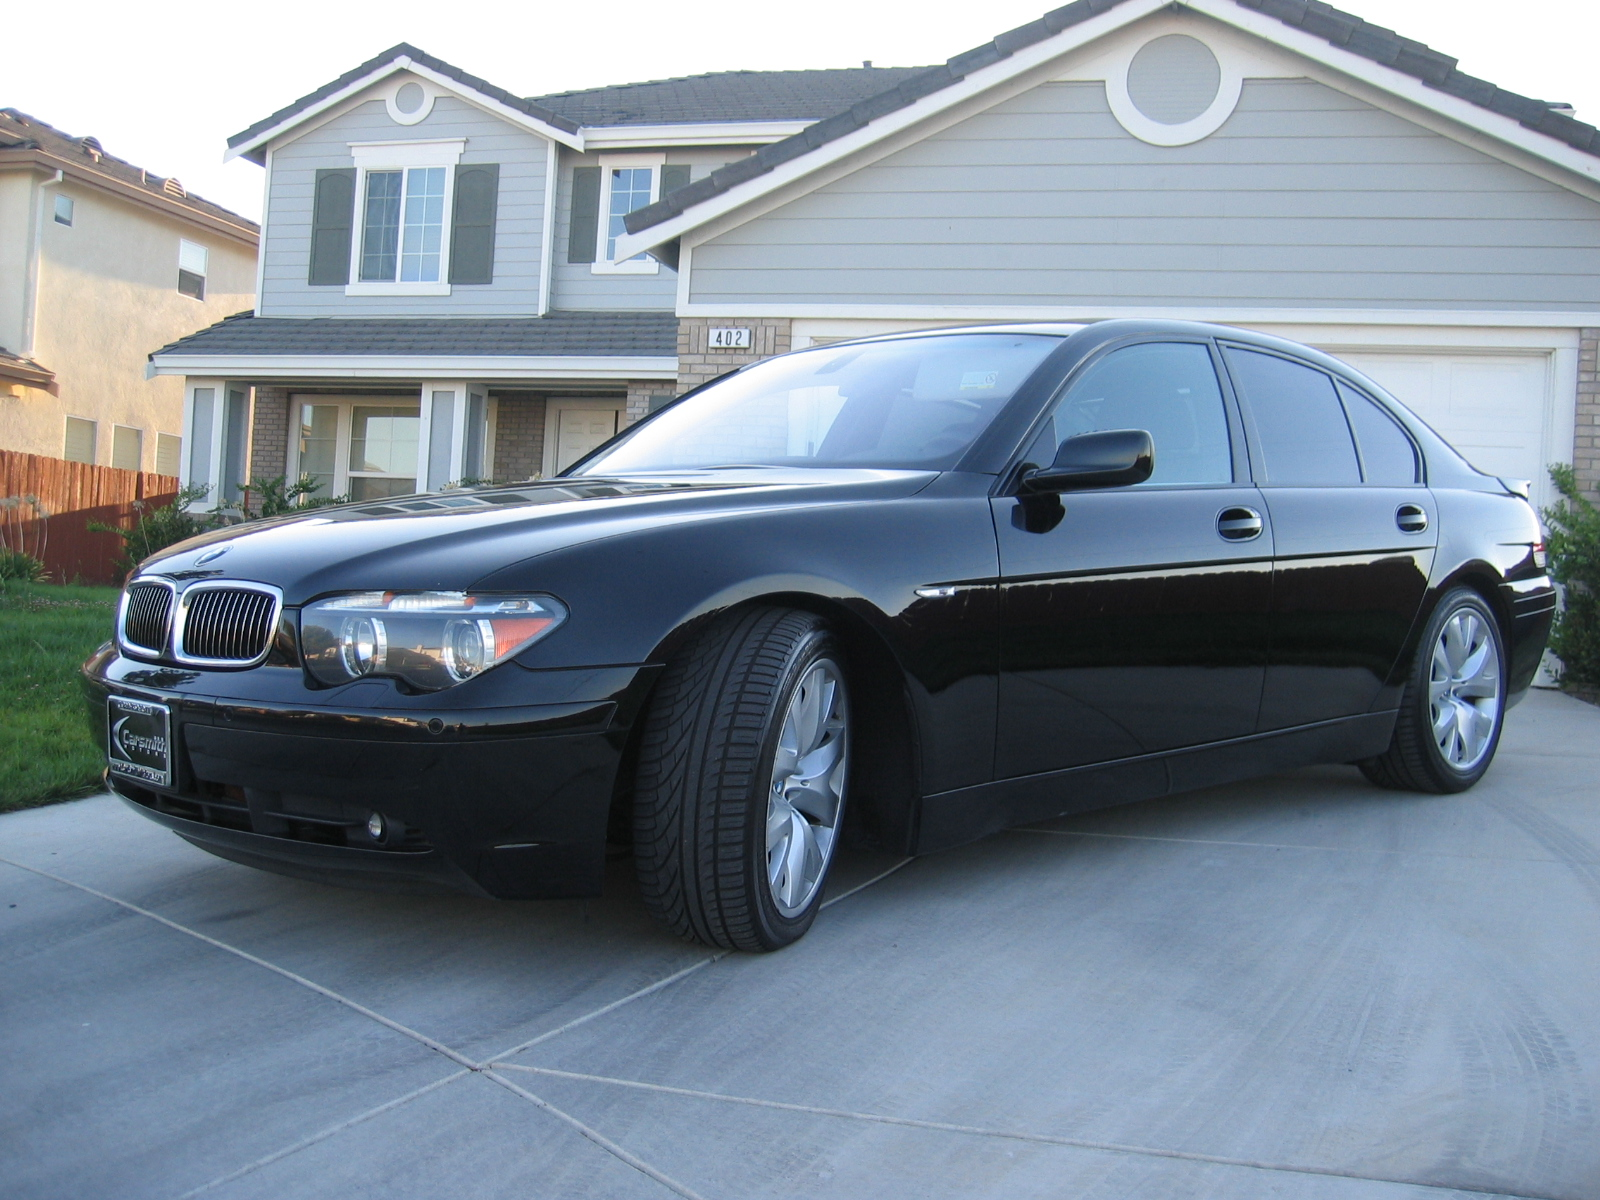 bmw 7 series e65 gallery and specs bimmerin. Black Bedroom Furniture Sets. Home Design Ideas